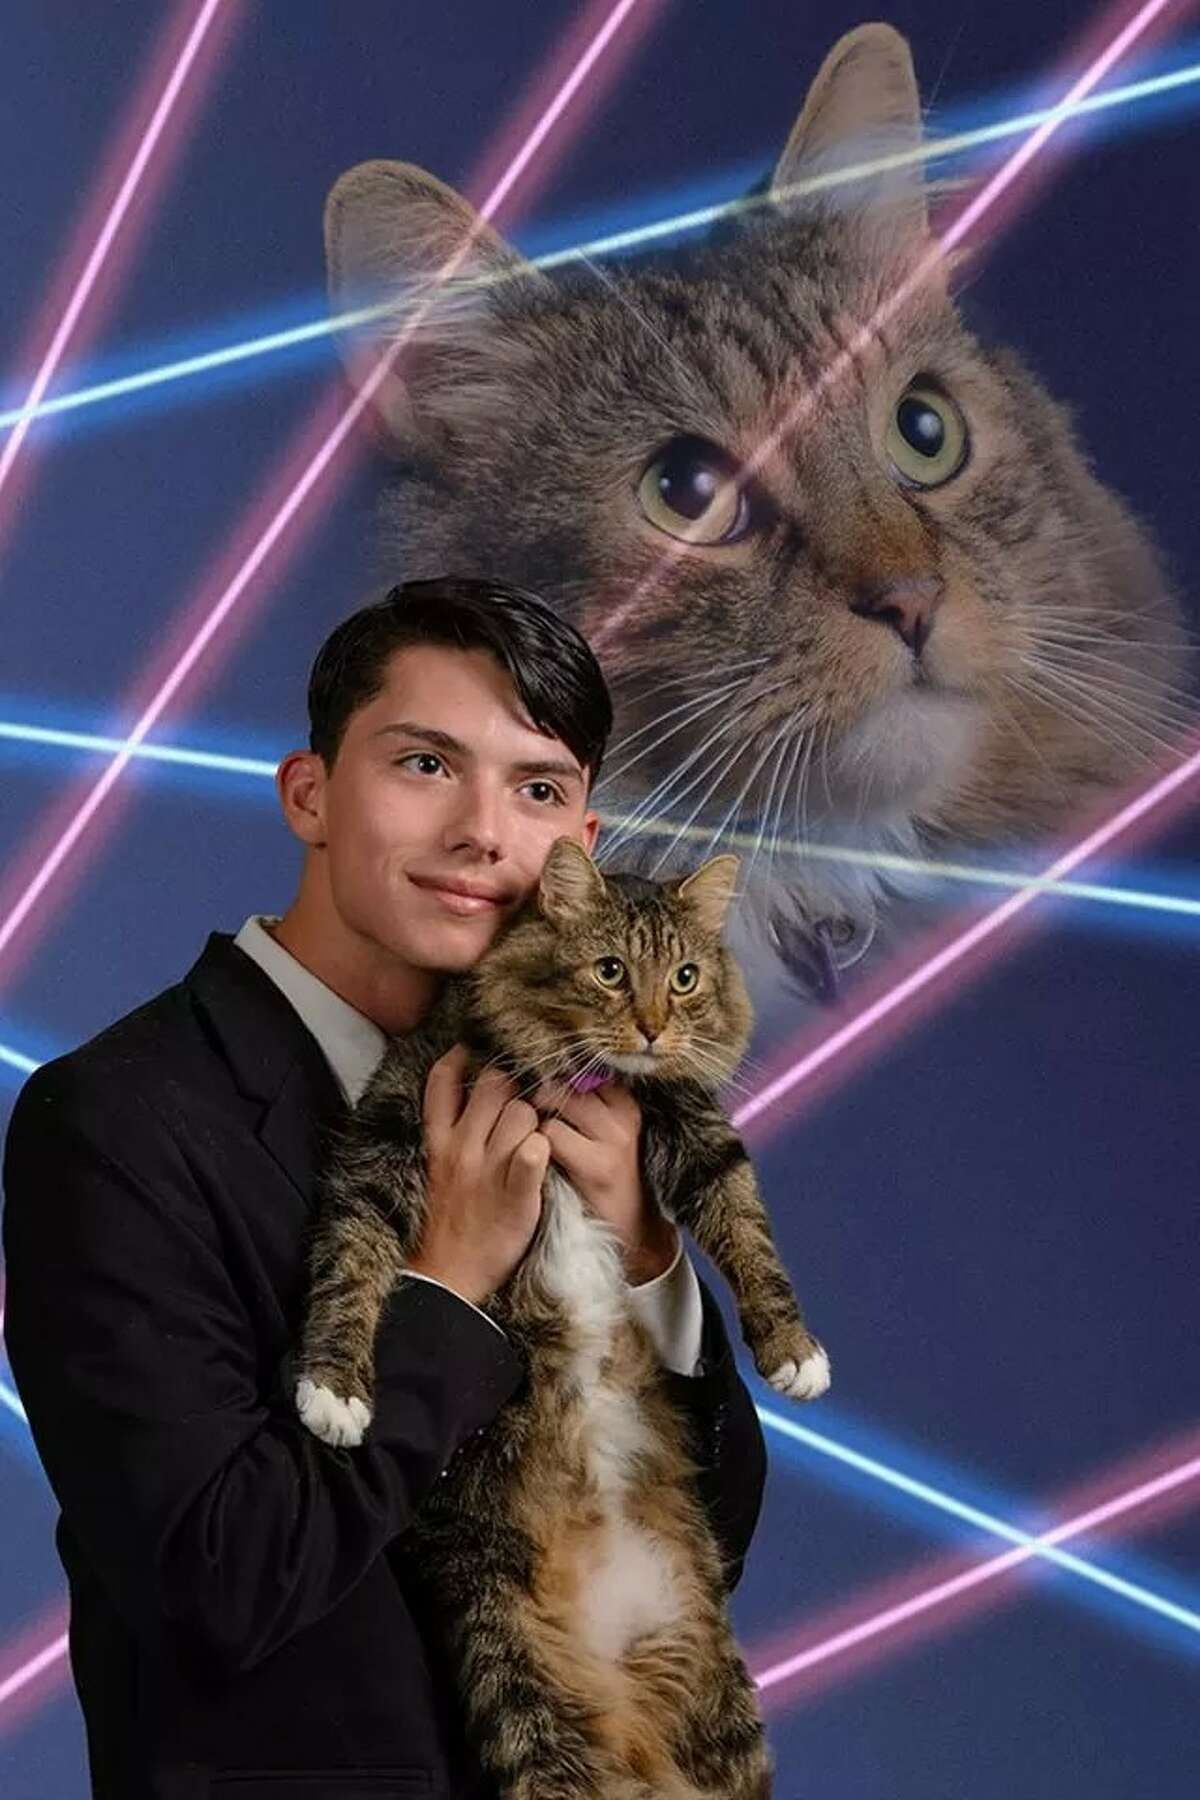 Draven Rodriguez, 16, and his cat Mr. Bigglesworth in a photo taken by Vincent Giordano. Rodriguez wanted the image used as his senior portrait in his Schenectady High School yearbook. (Provided)